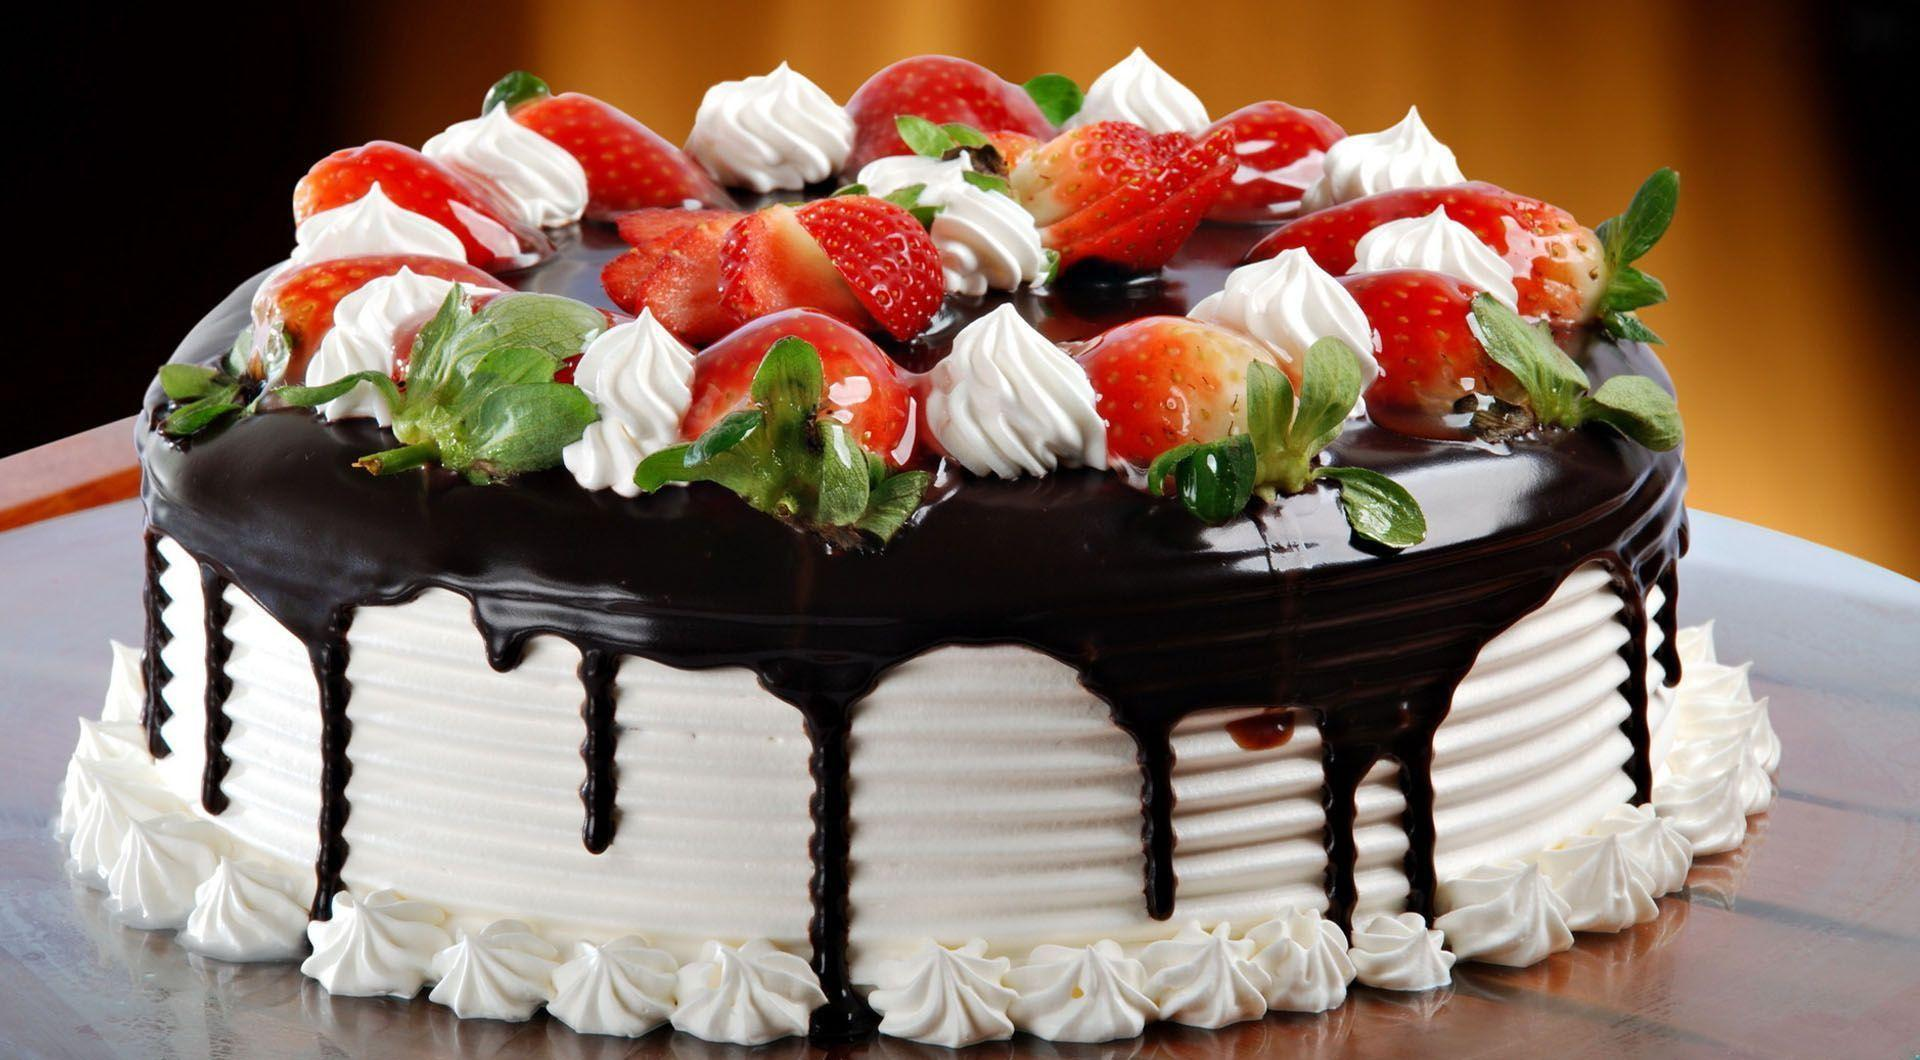 Birthday Cake In Hd Images : Wallpapers Happy Birthday Cake - Wallpaper Cave